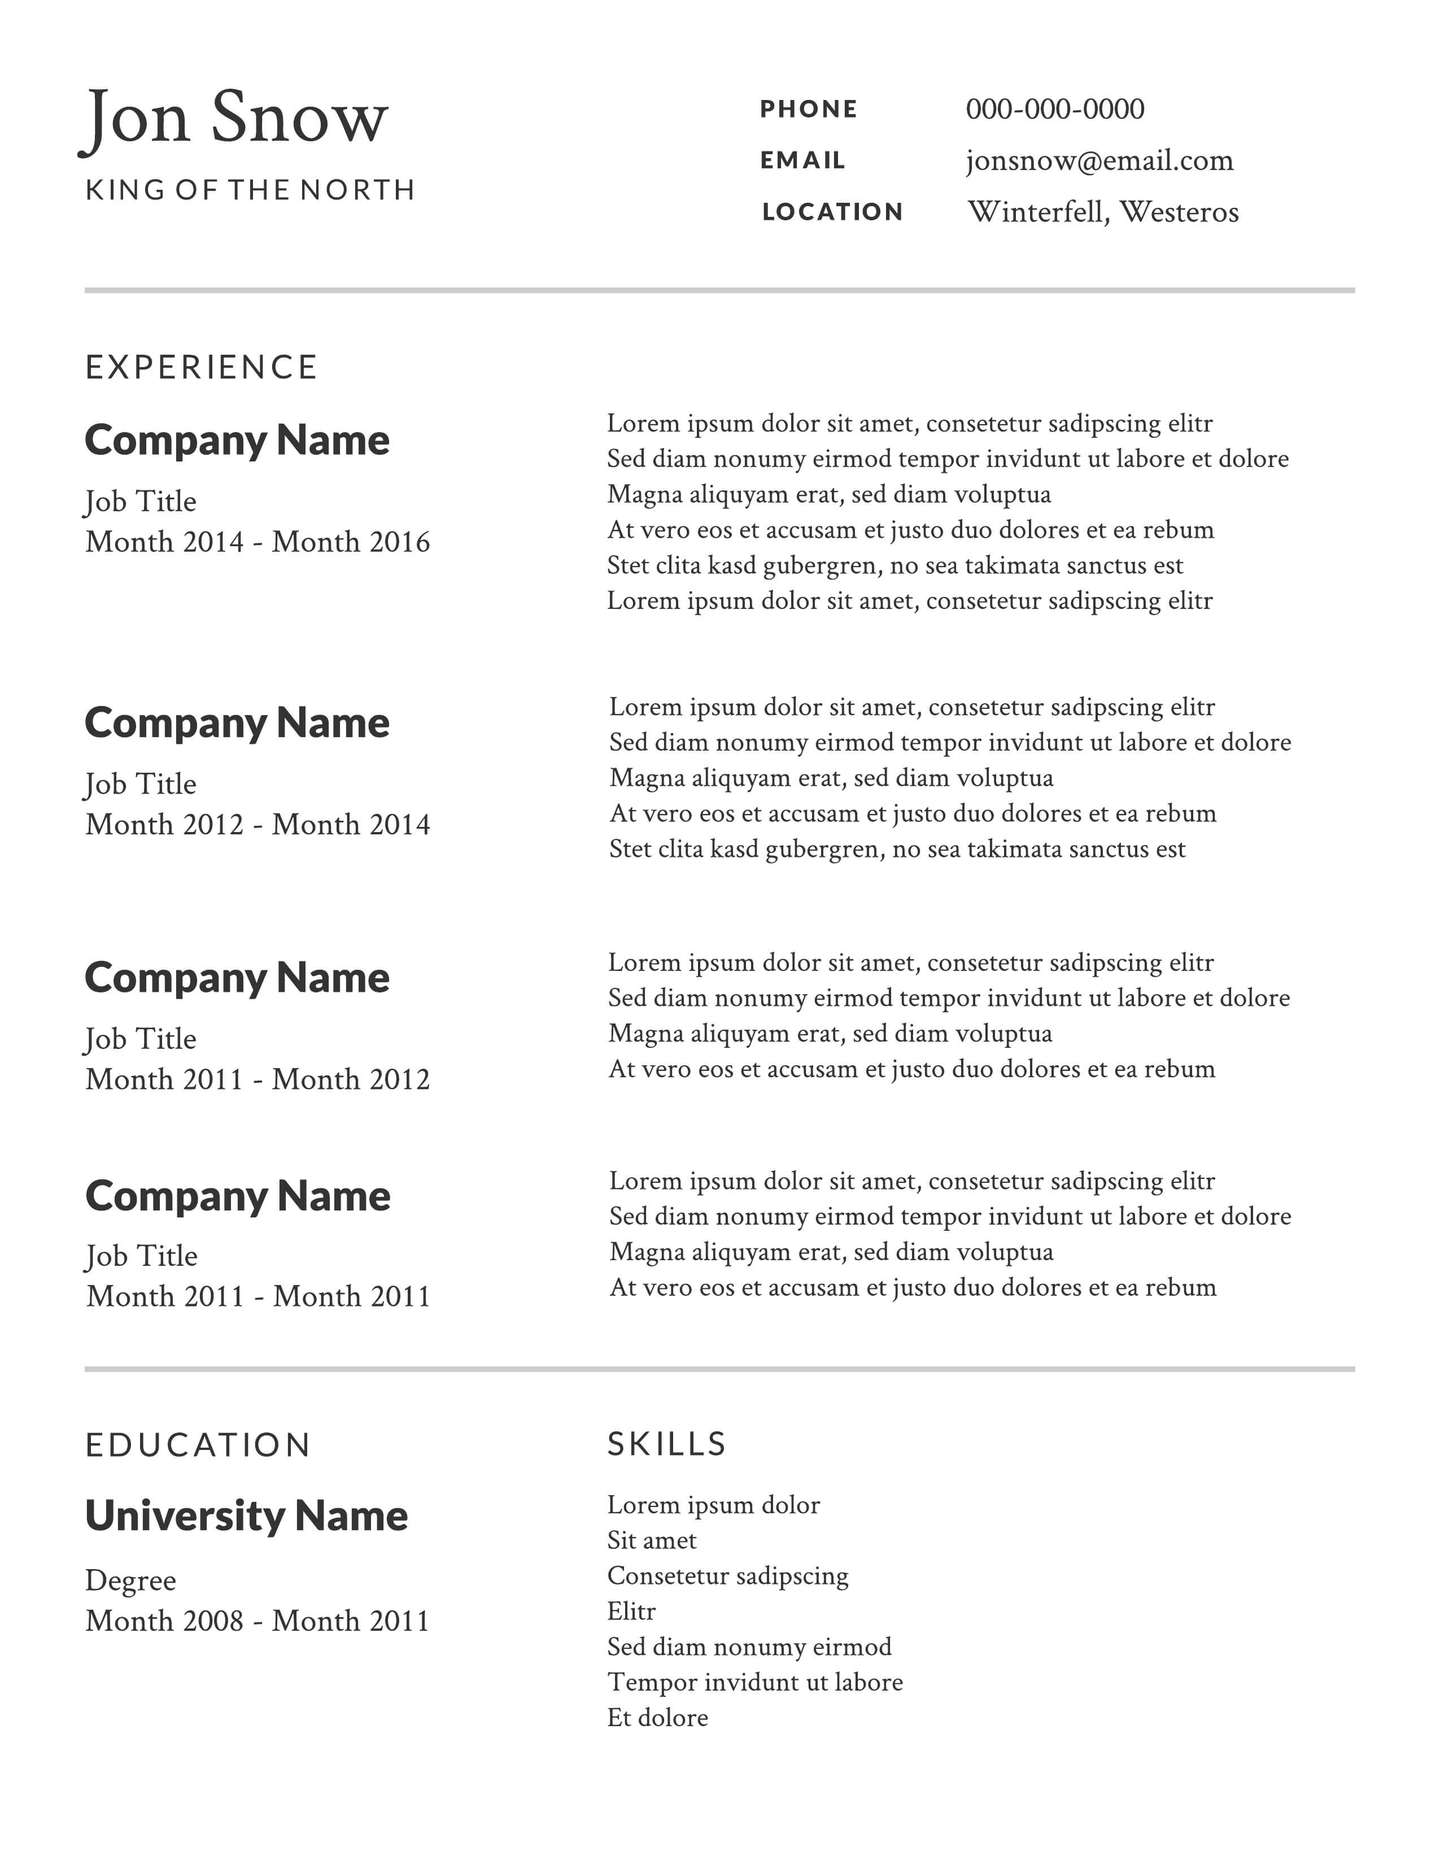 Professional Resumes Template 2 Free Resume Templates And Examples Lucidpress